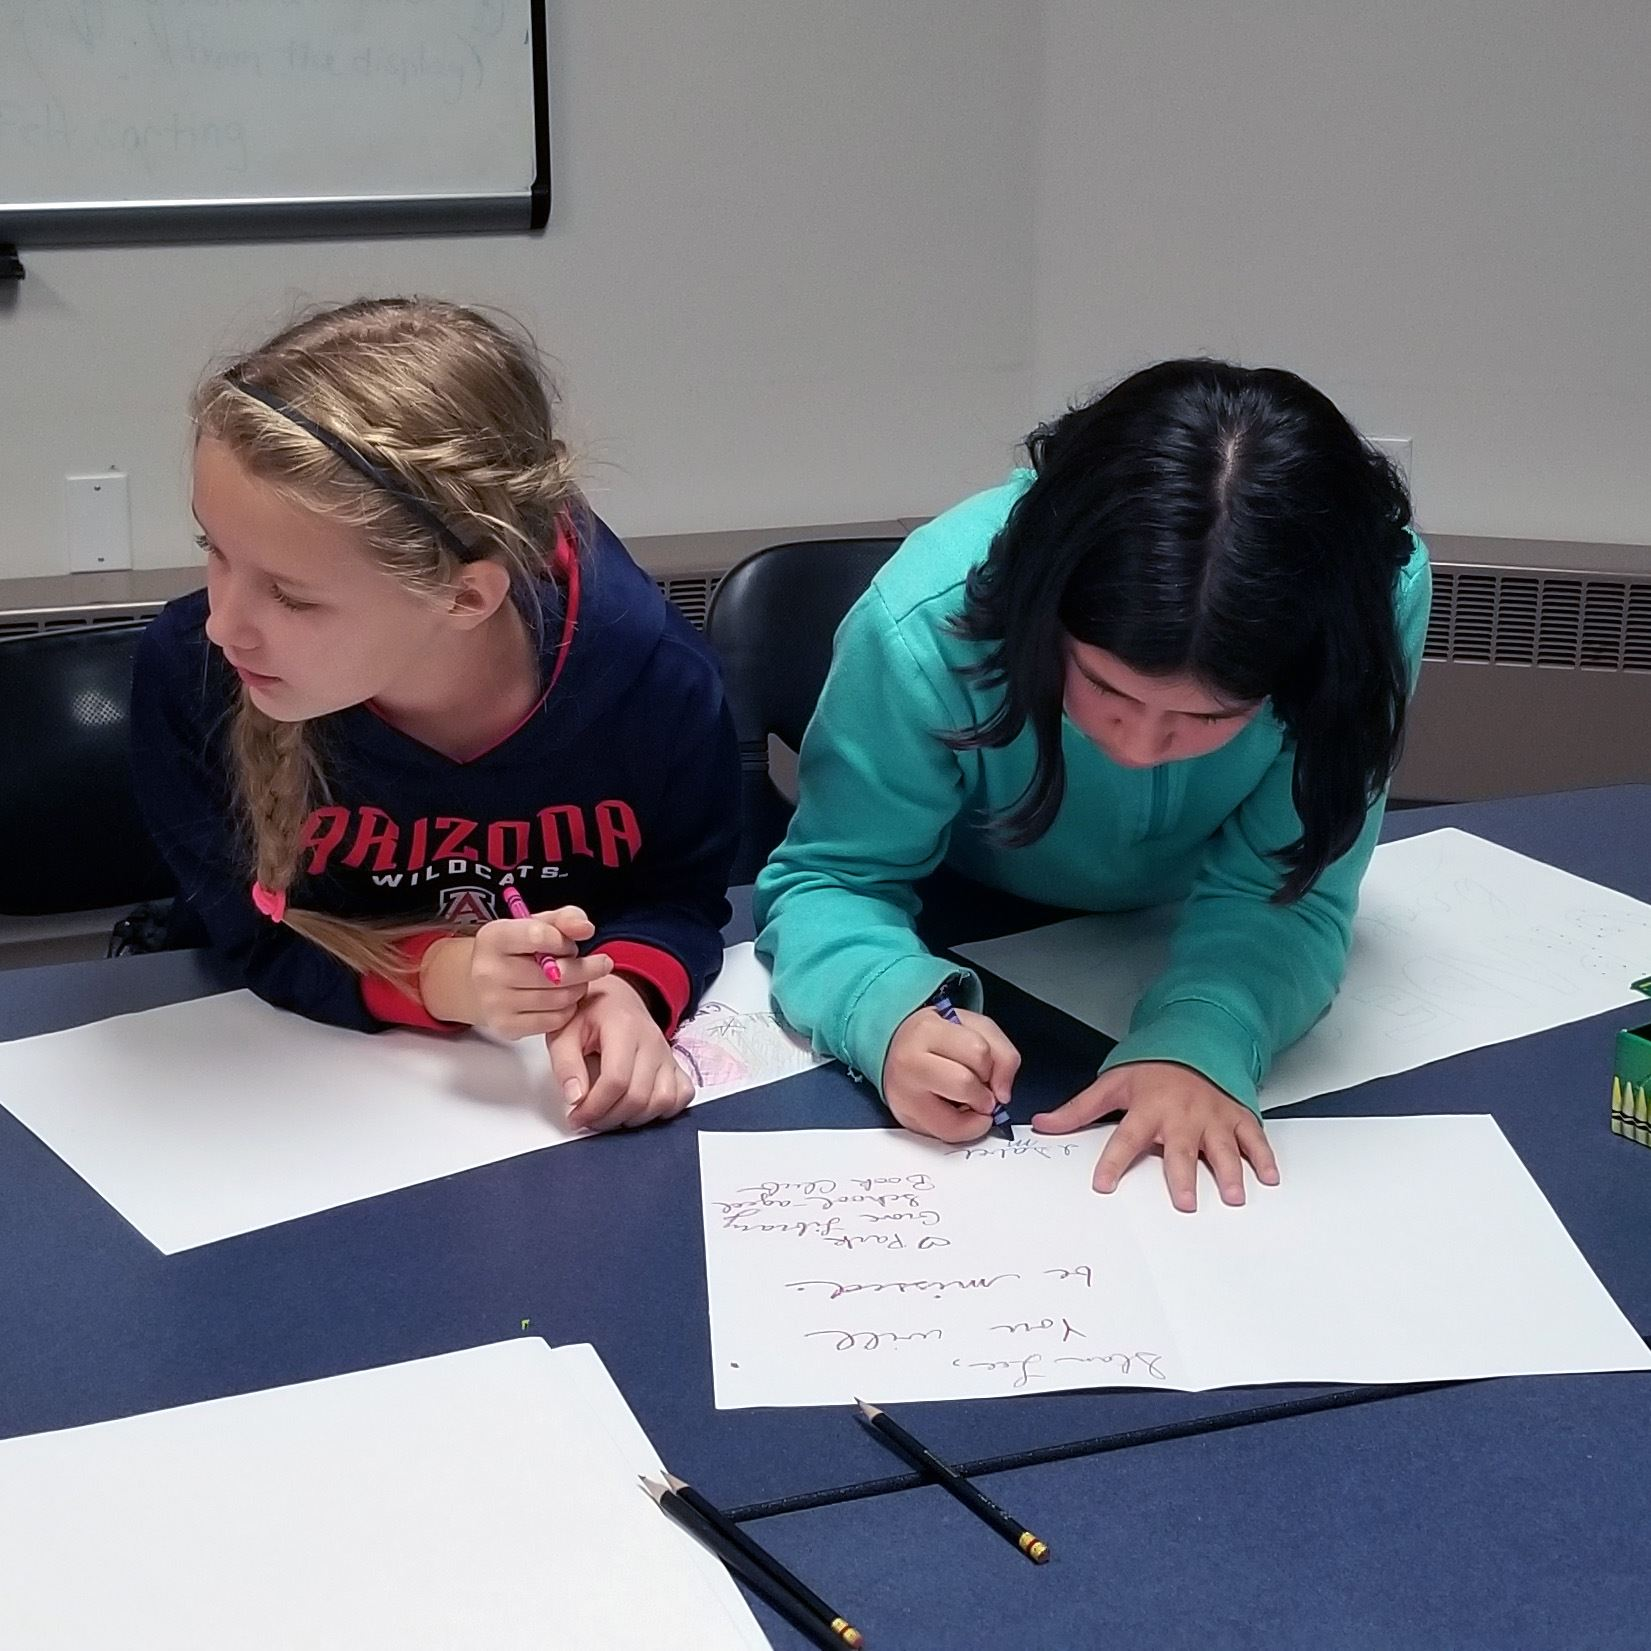 Photo of kids doing an activity at book club.